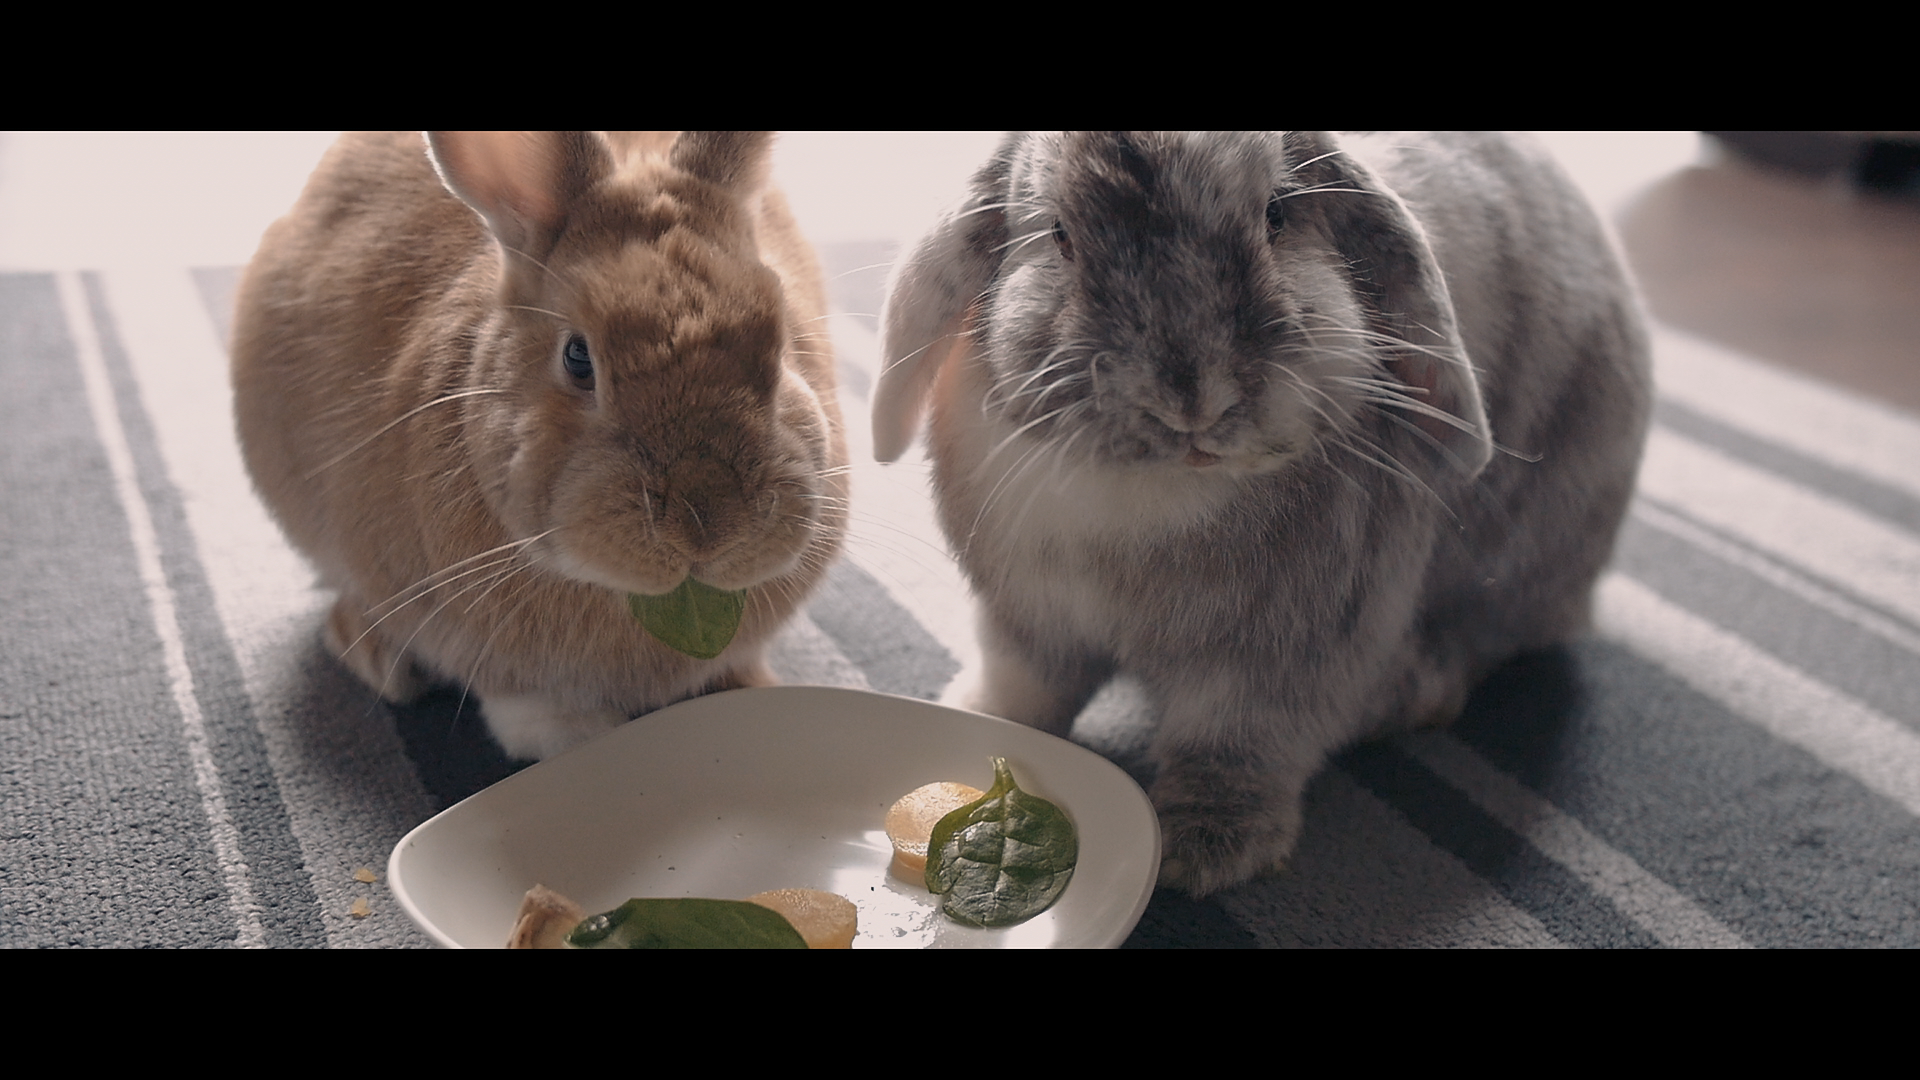 Better Life For Bunnies - Short documentary about educational incursion on care and welfare for bunnies. Rodereel 2019 submission.